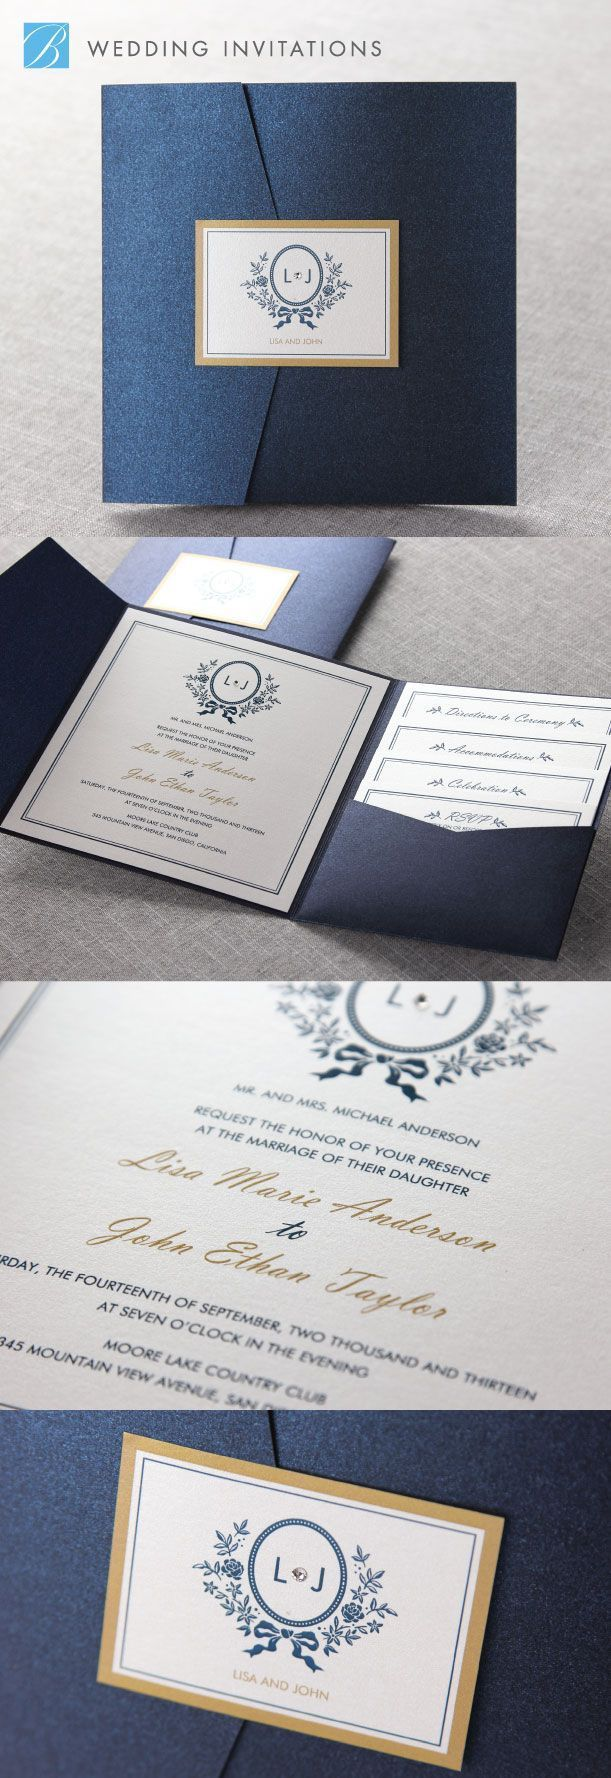 Formal Wedding Invitation | Wedding Concepts Visit here http://getweddingconcepts.com